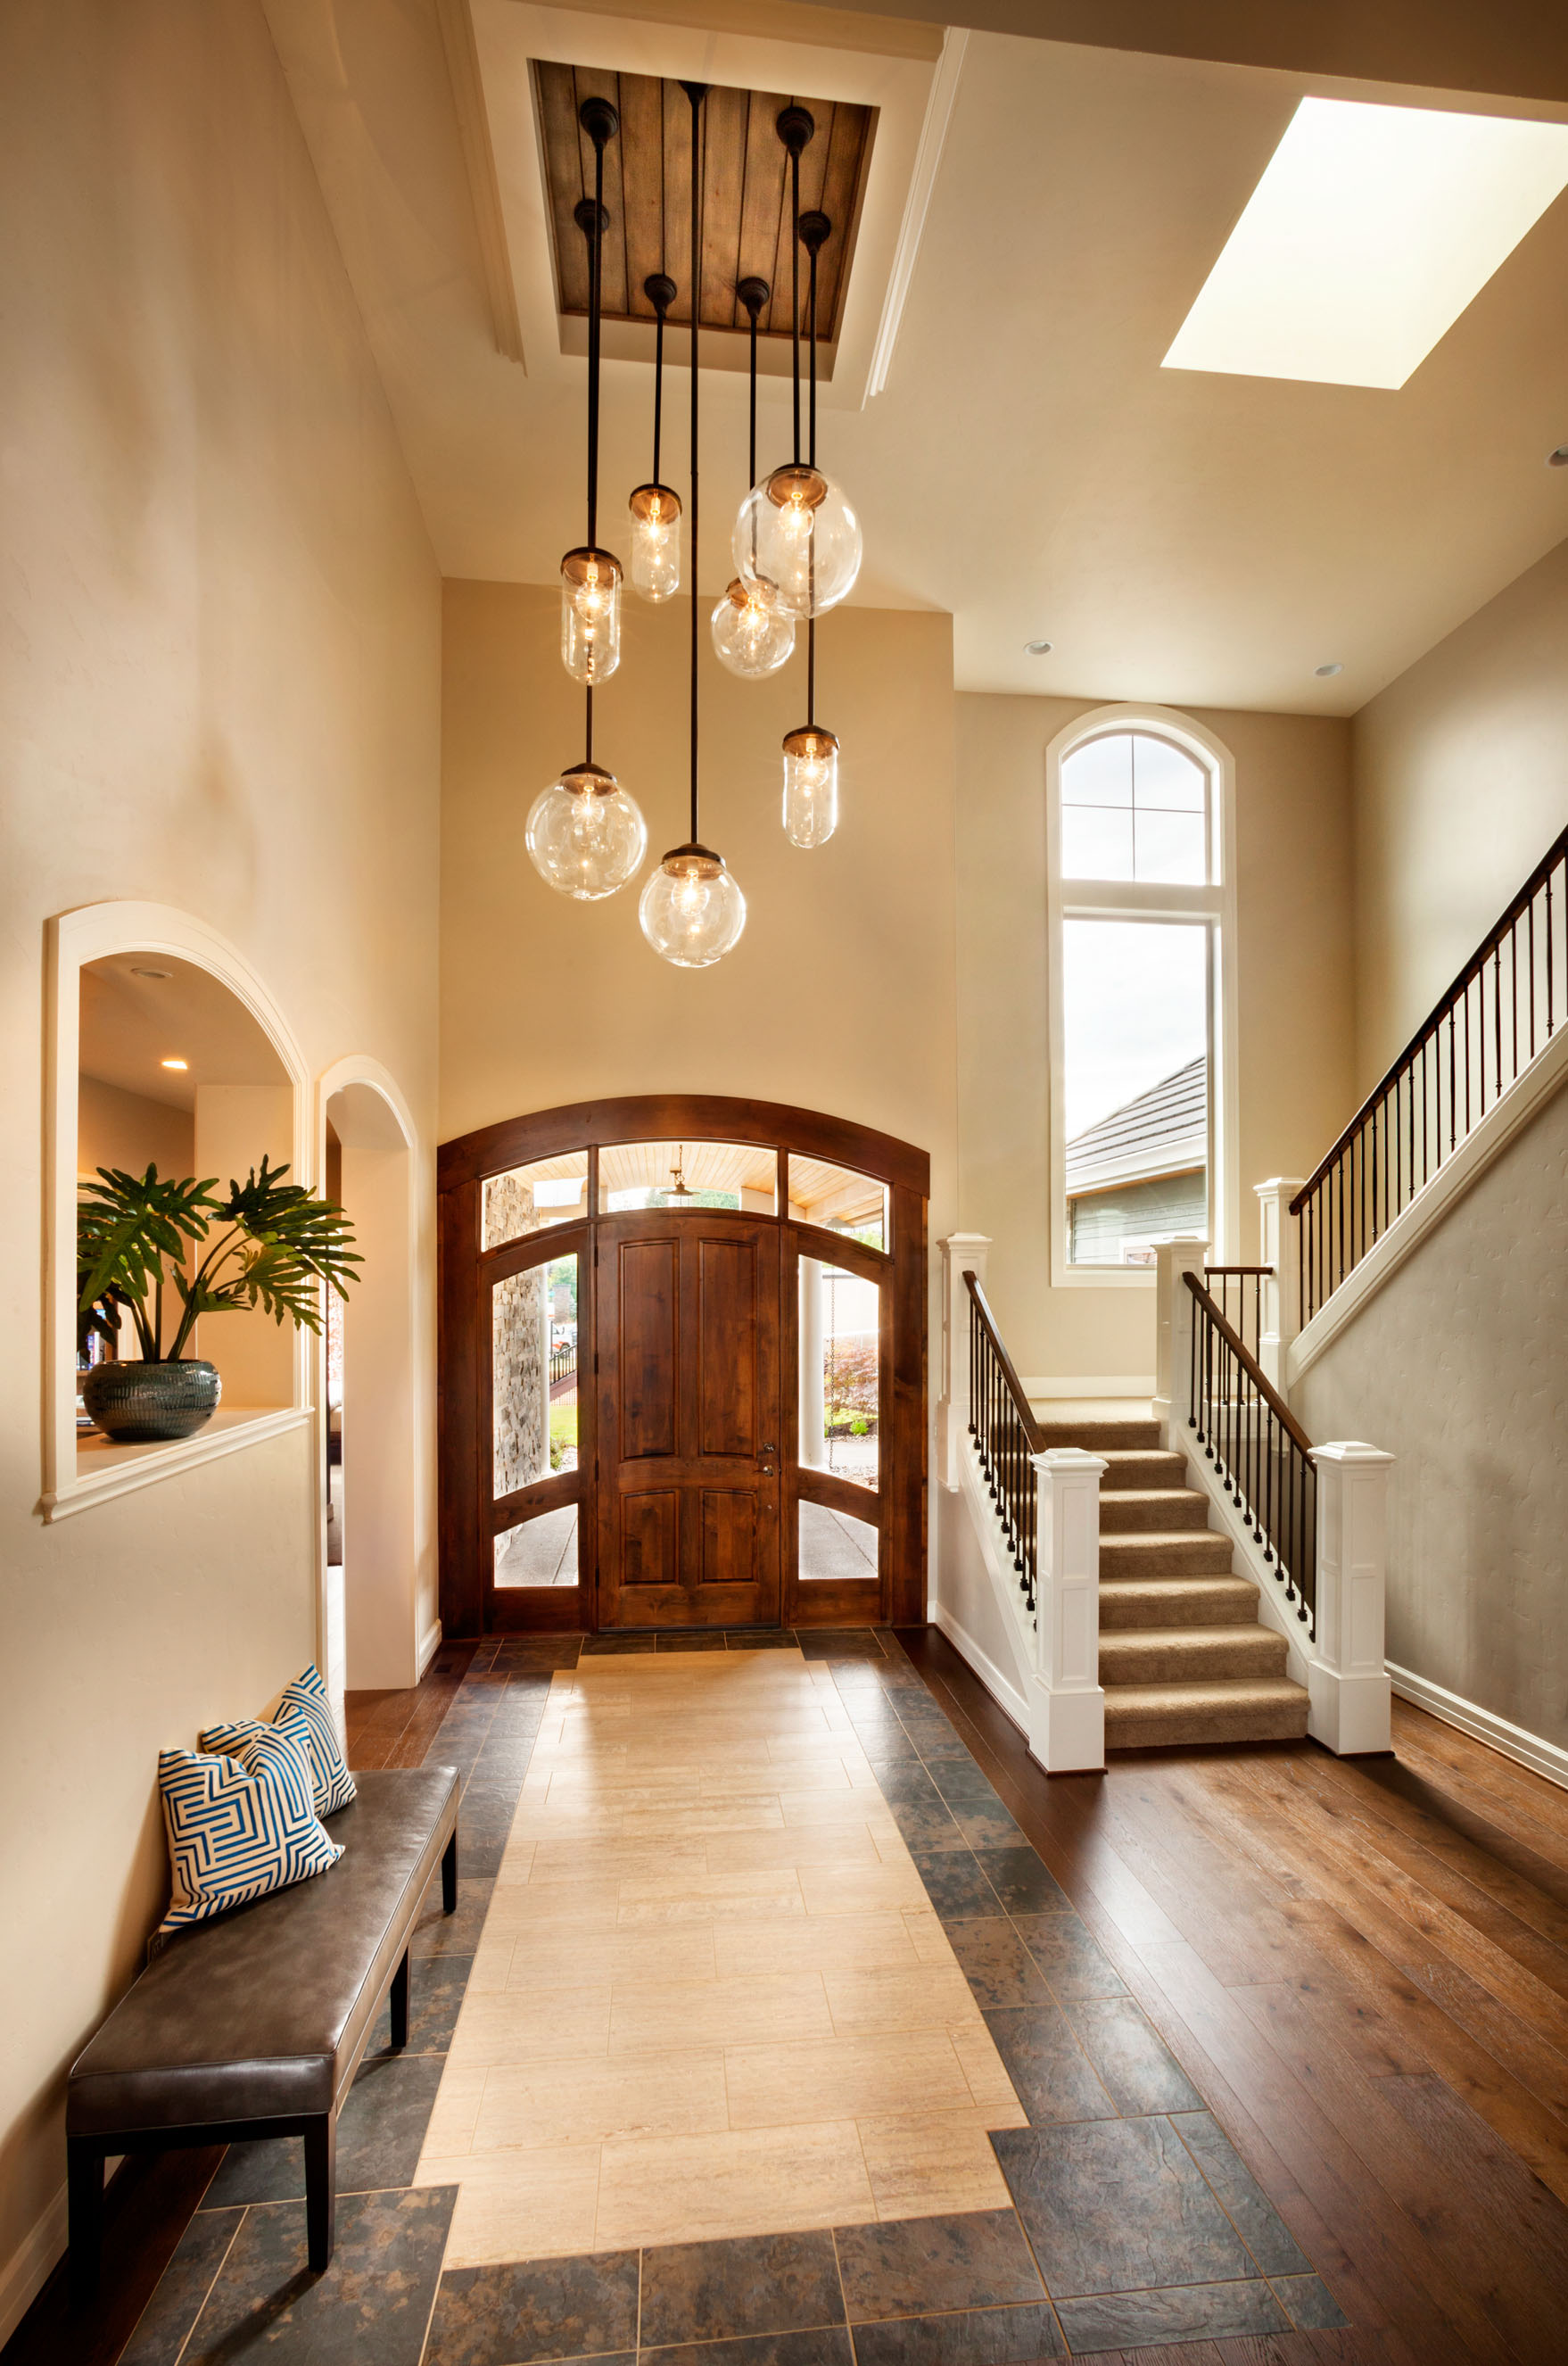 Feng Shui Entrance Tips For Attracting Good Luck And